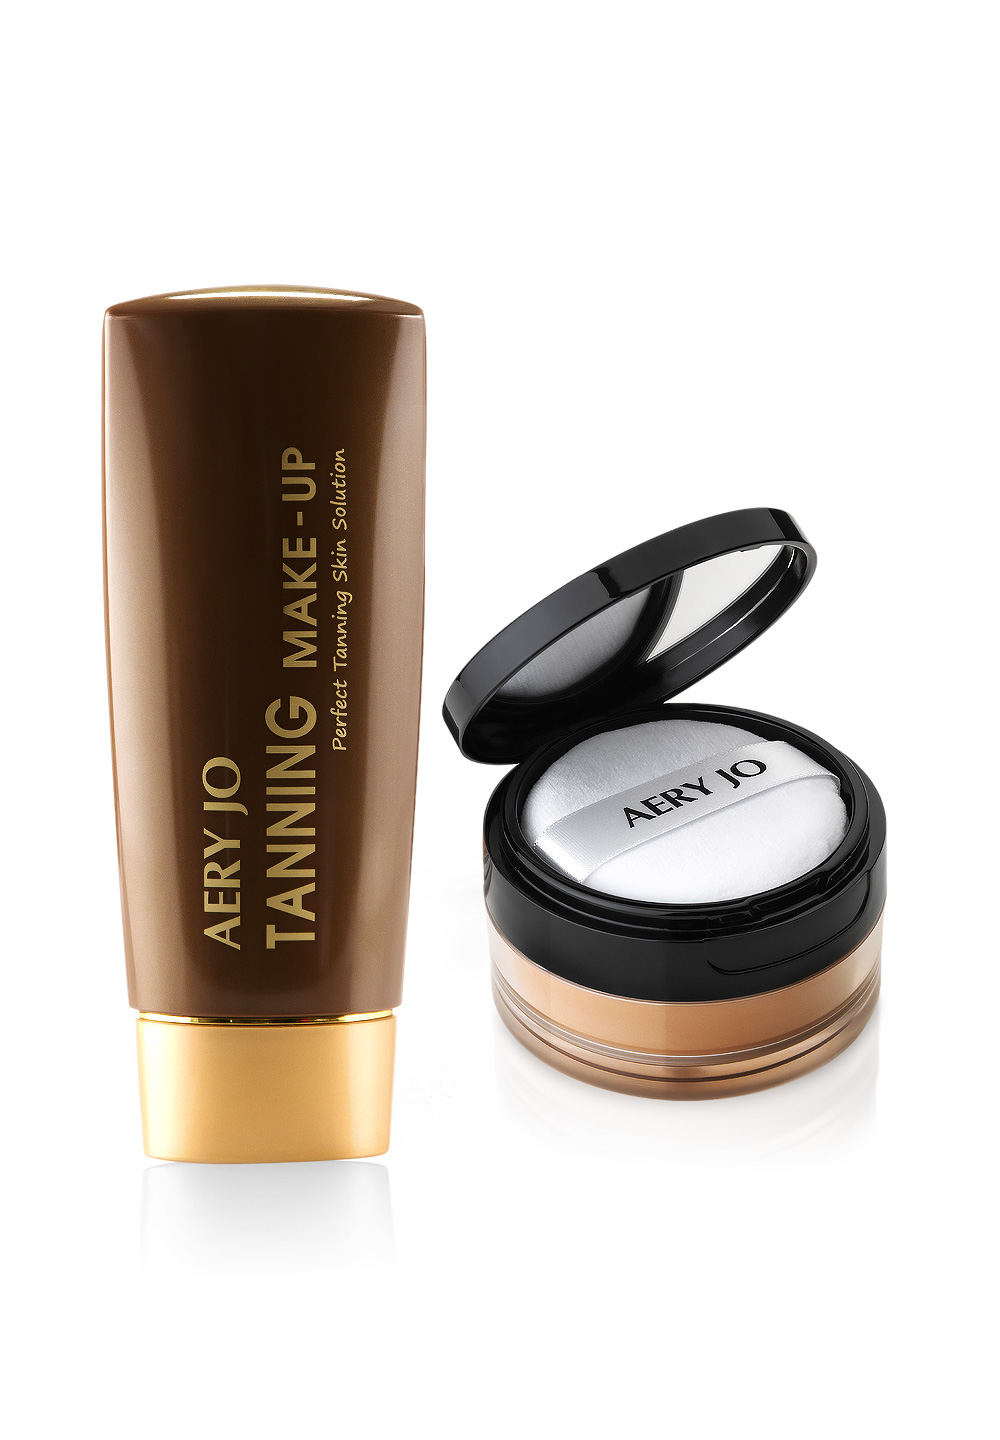 Aery Jo Dance Tanning Make Up Set - #5 Brown Stone